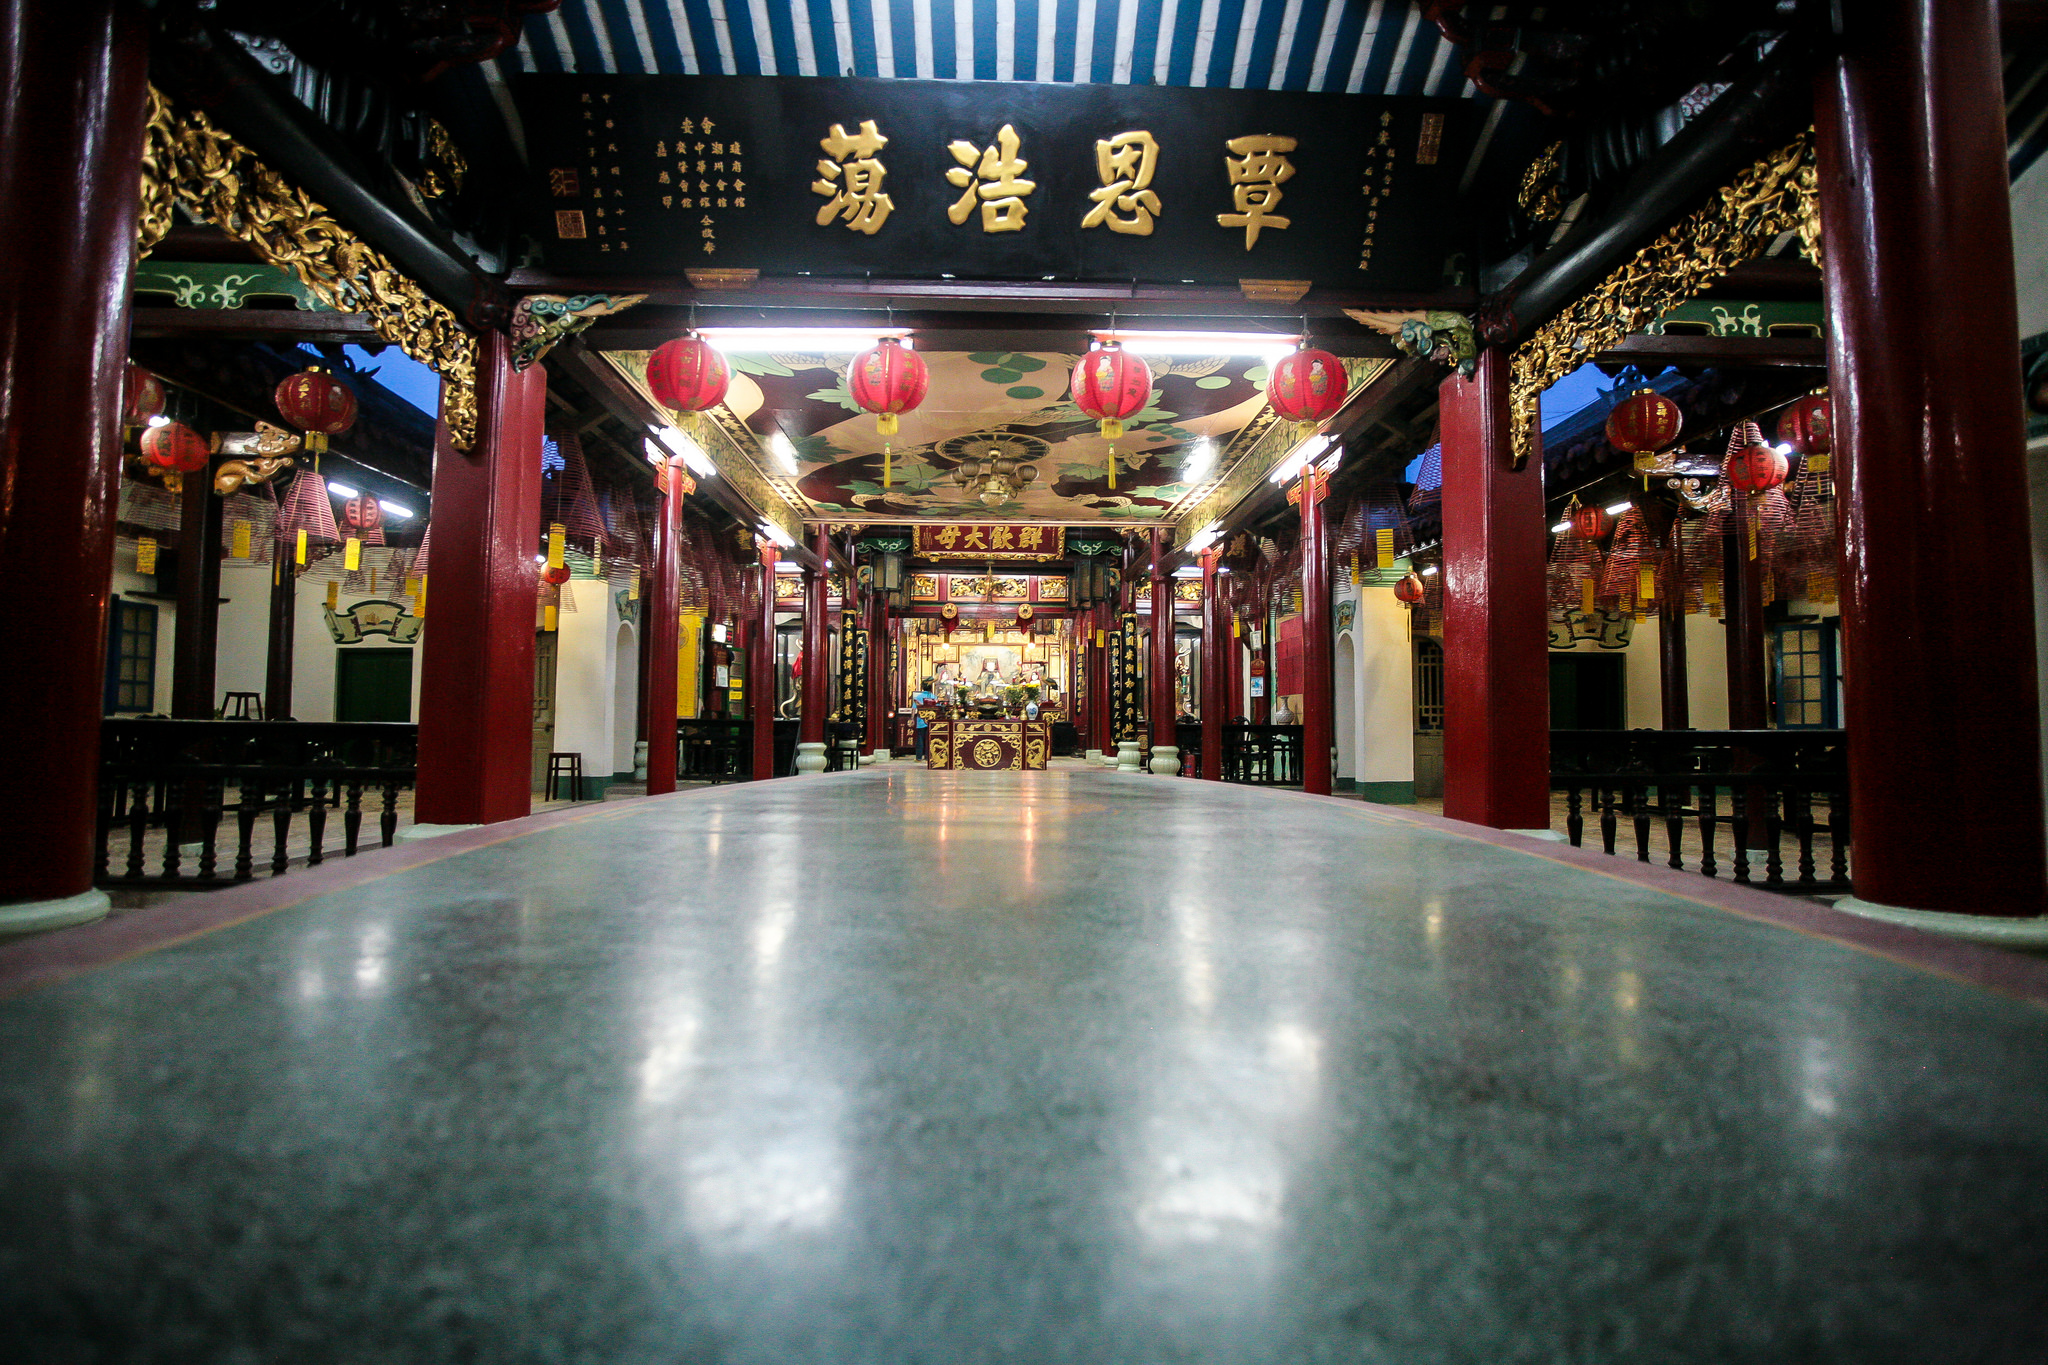 The interior of Phuoc Kien Assembly Hall, Vietnam